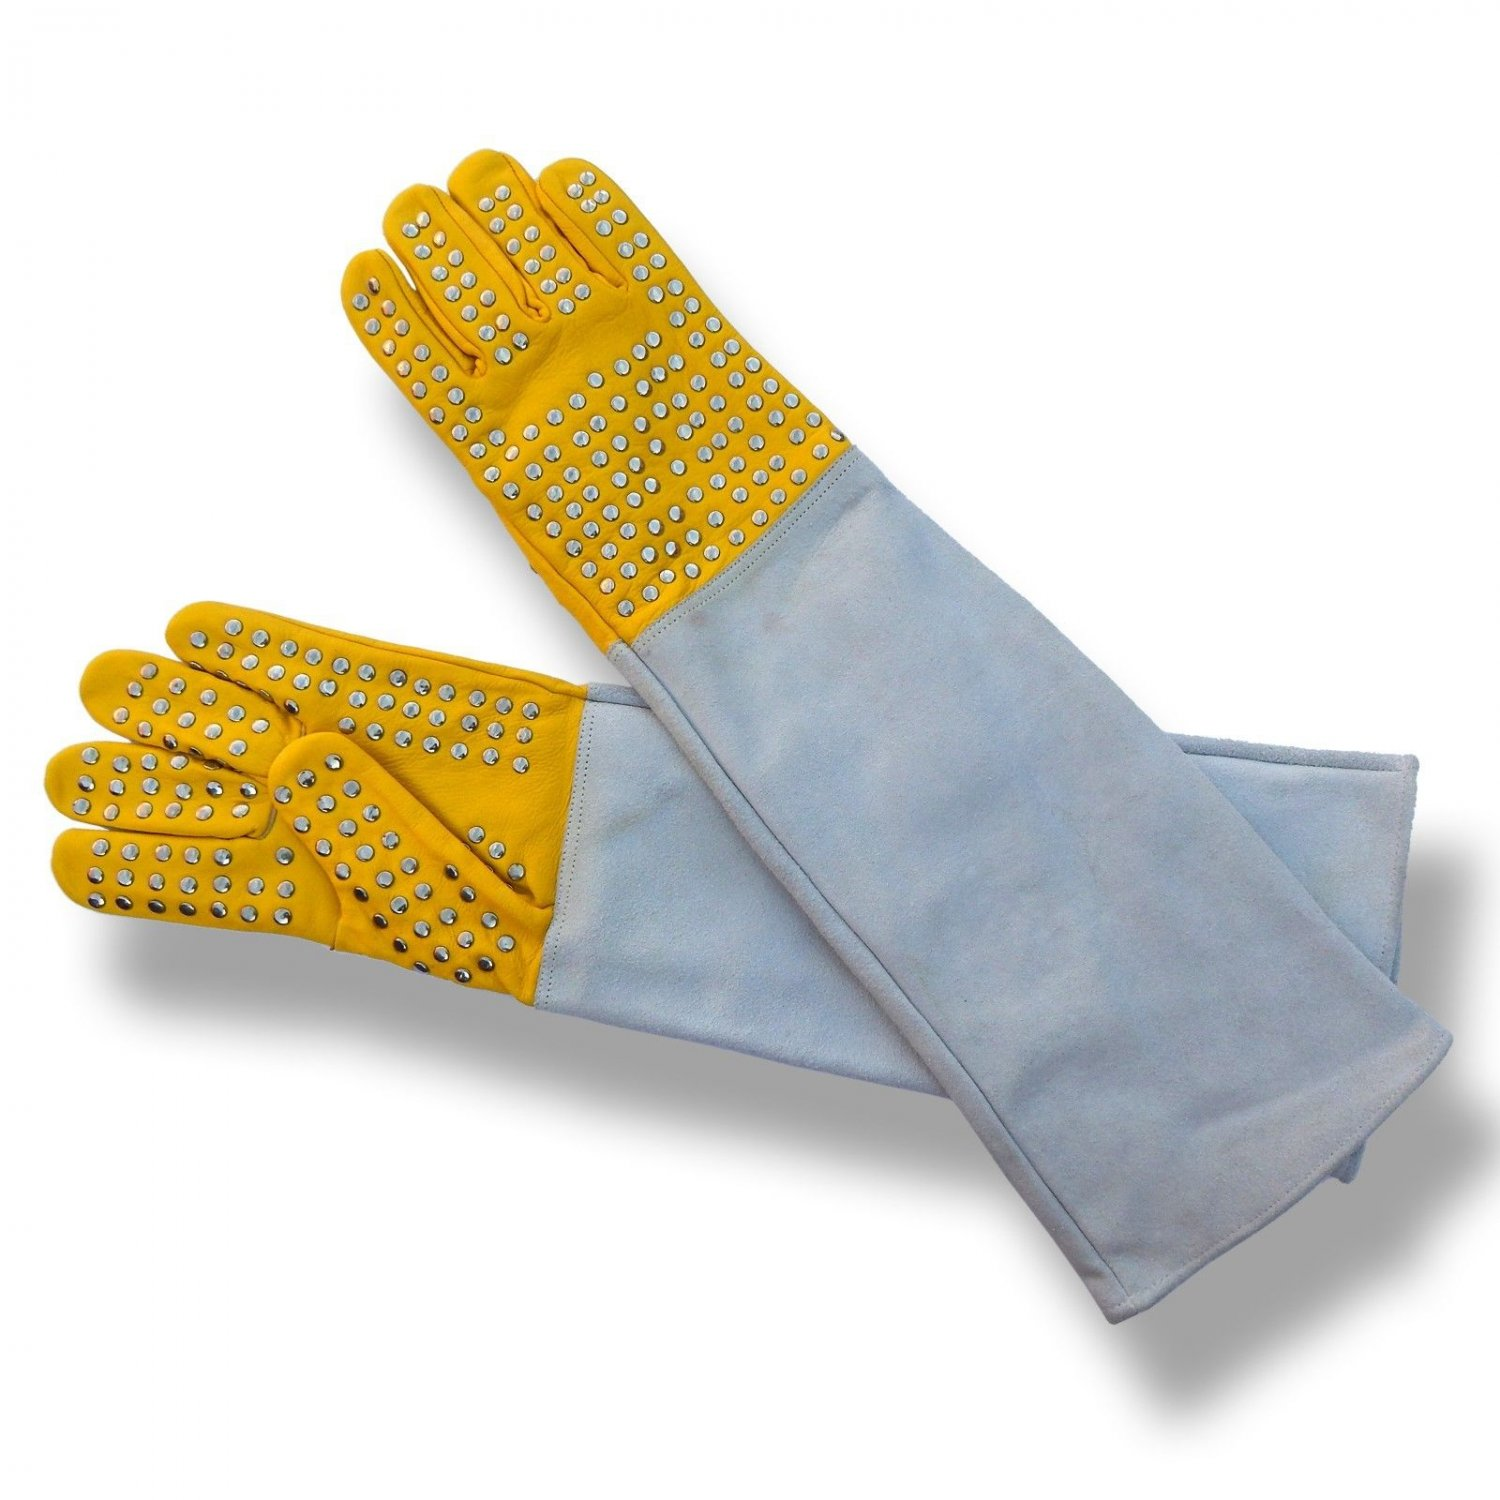 New DC067 Snake Catcher Gloves Heavy Duty Reptile Lizards Leather Gloves Yellow